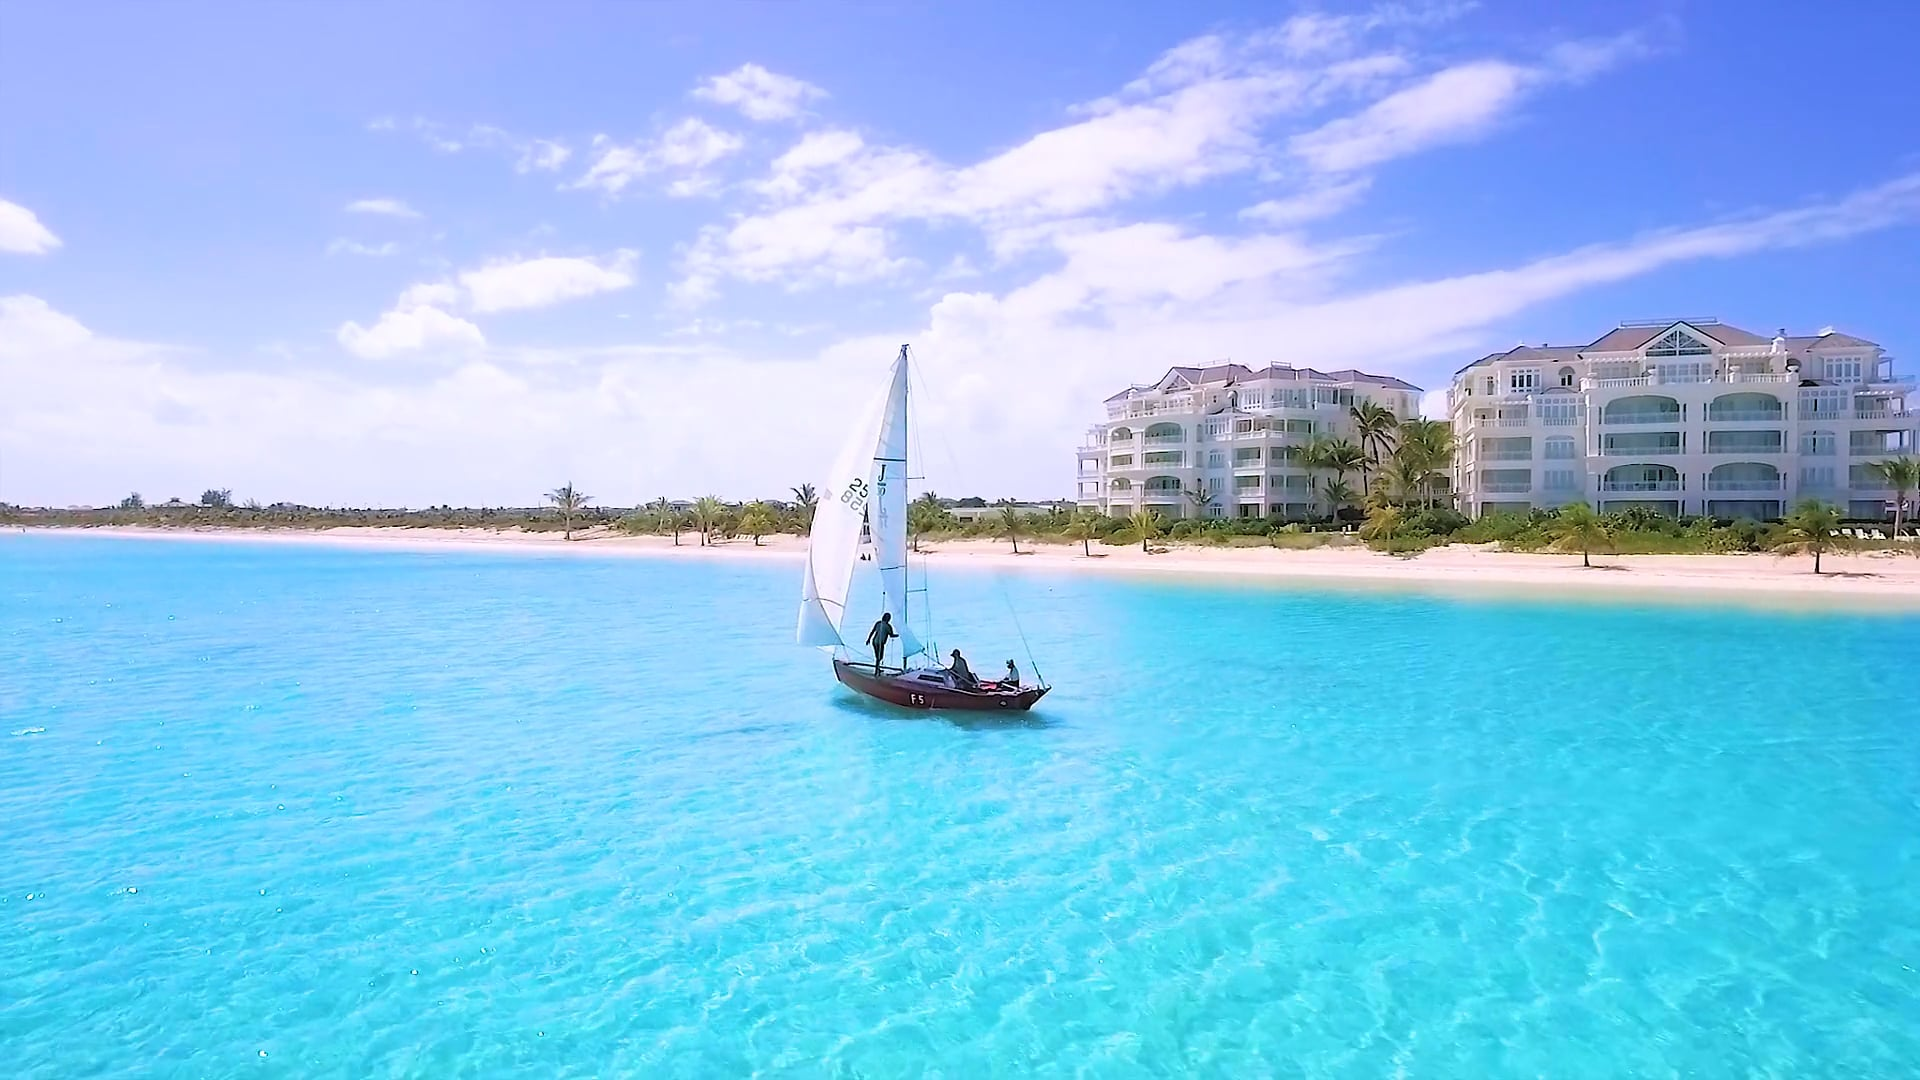 Shore Club in the Turks and Caicos Islands